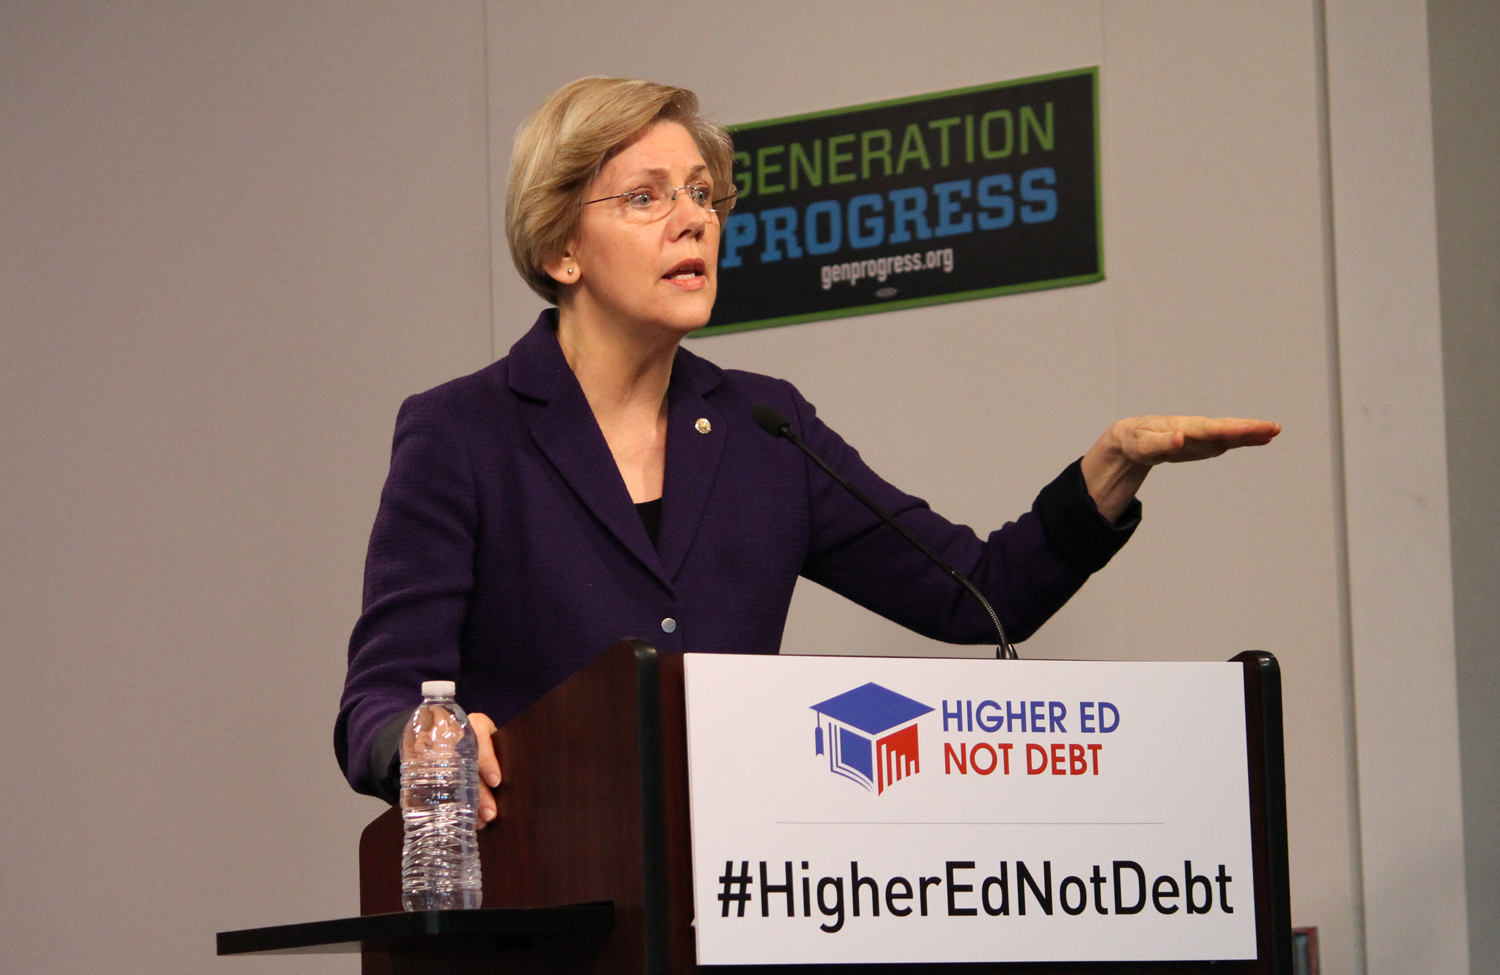 Elizabeth-Warren-speaks-about-student-loan-debt